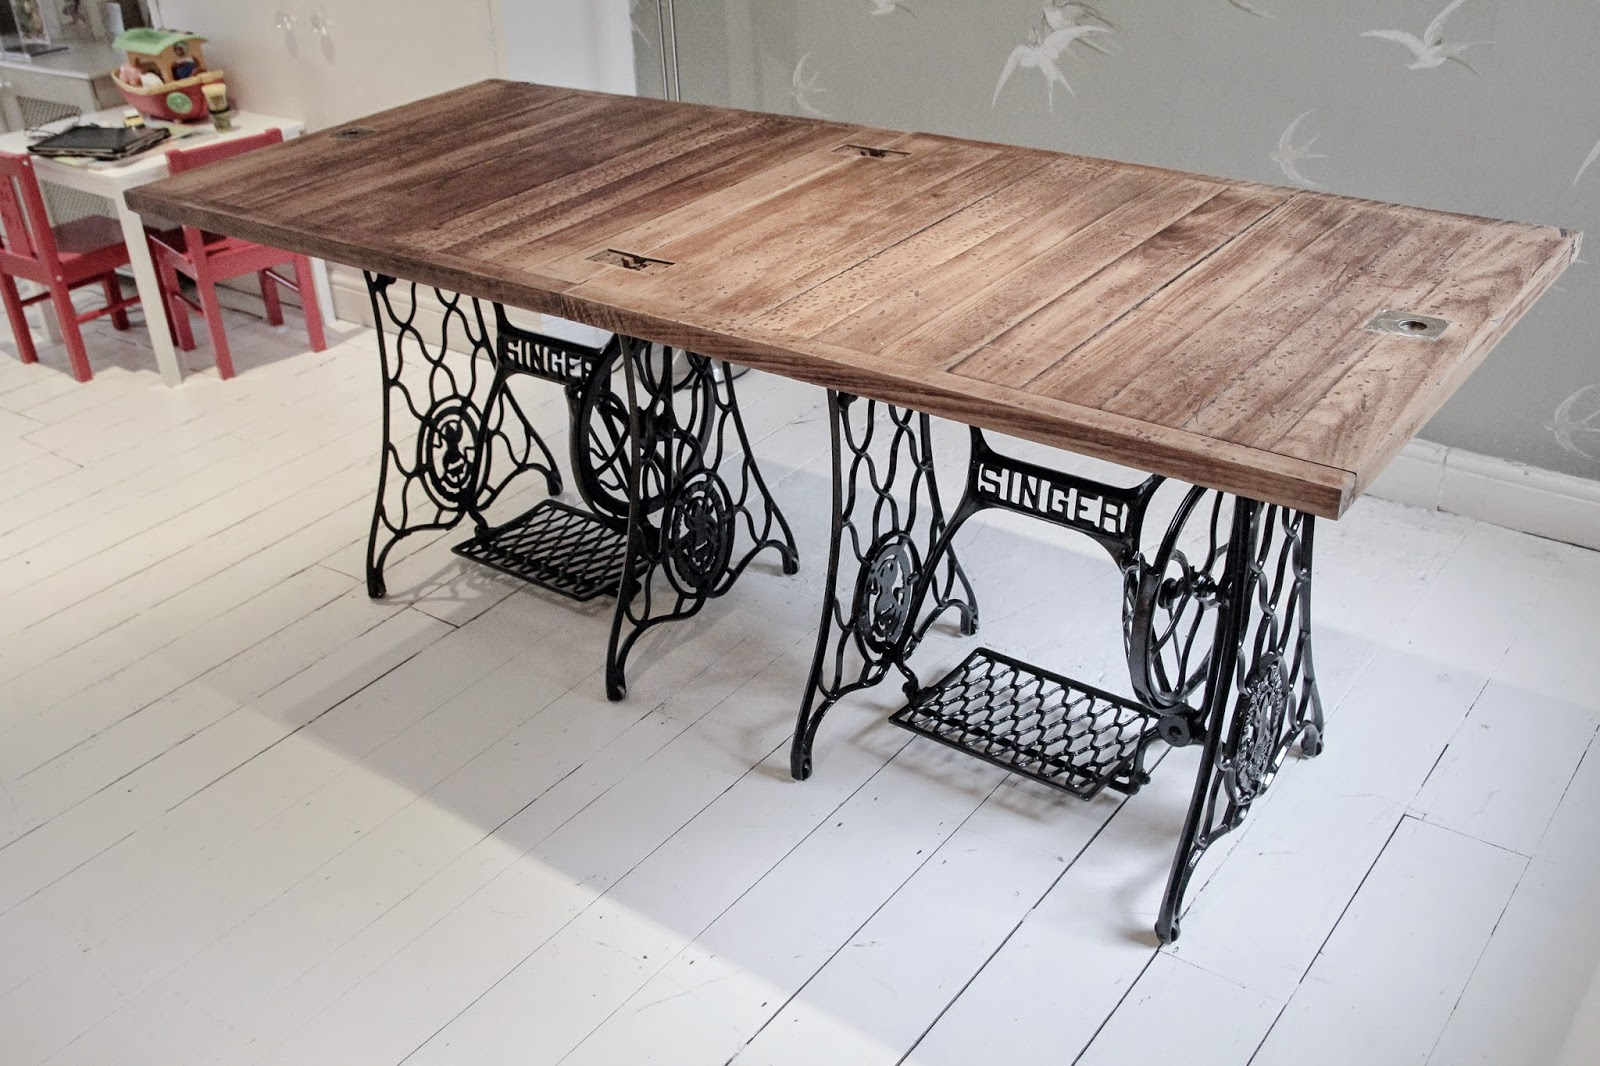 Awesome How To Make A Singer Sewing Machine Dining Table   With BBC Correspondent  Natalie Pirks